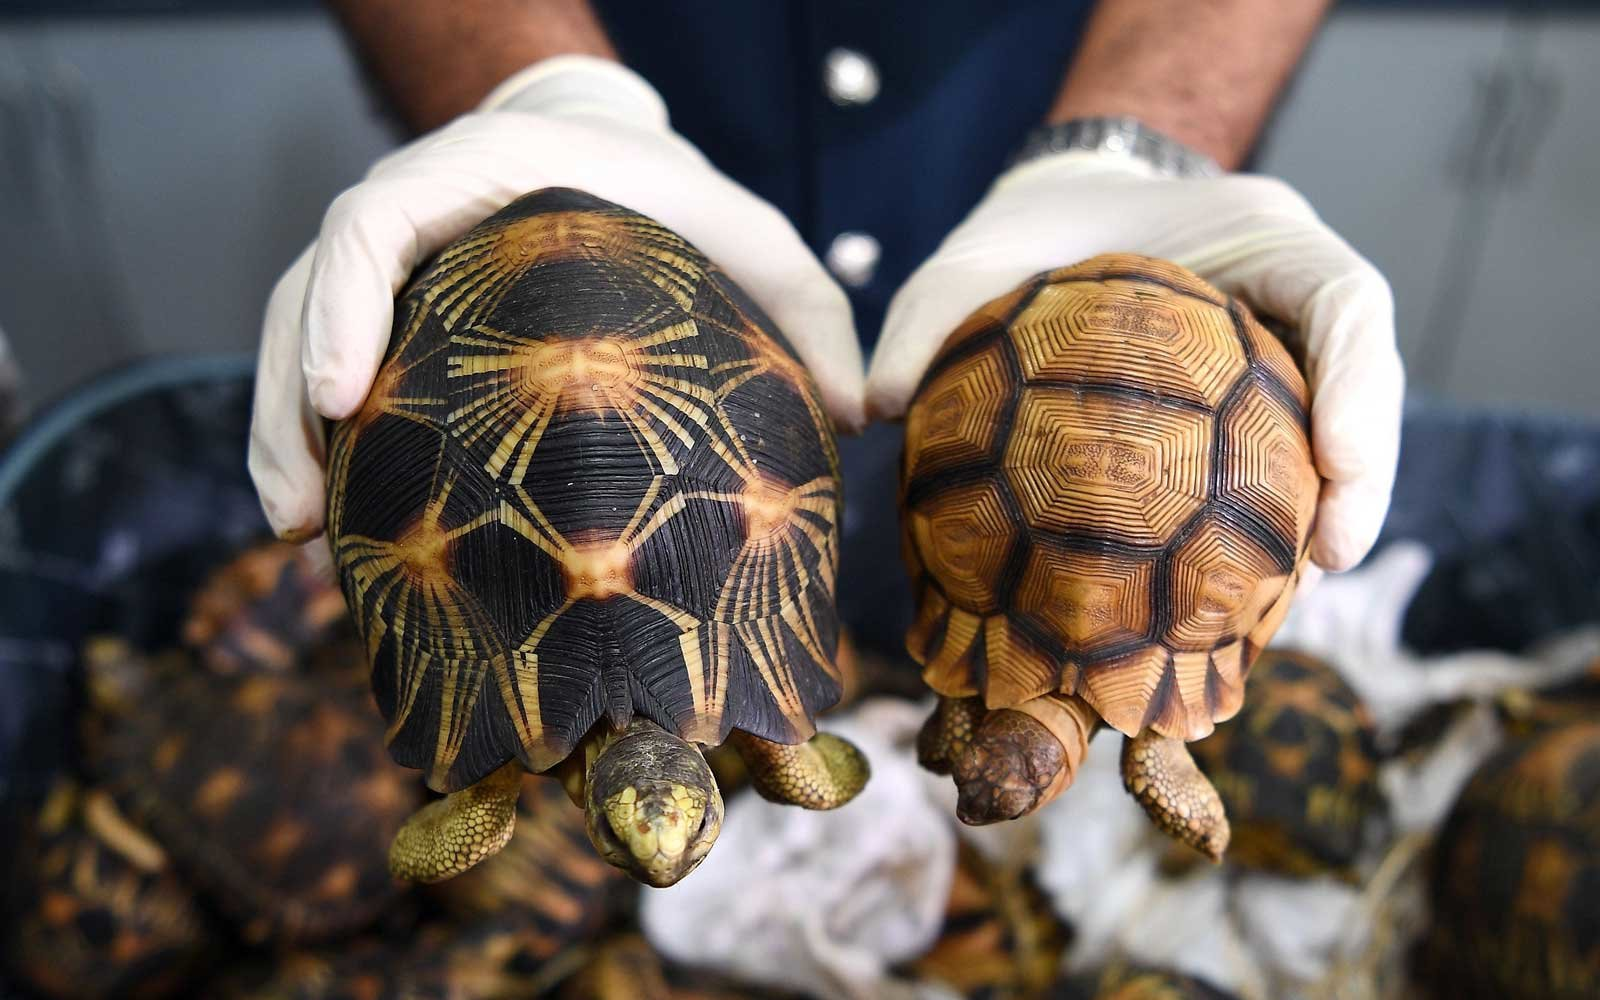 Tortoise Smuggling From Madagascar to Malaysia